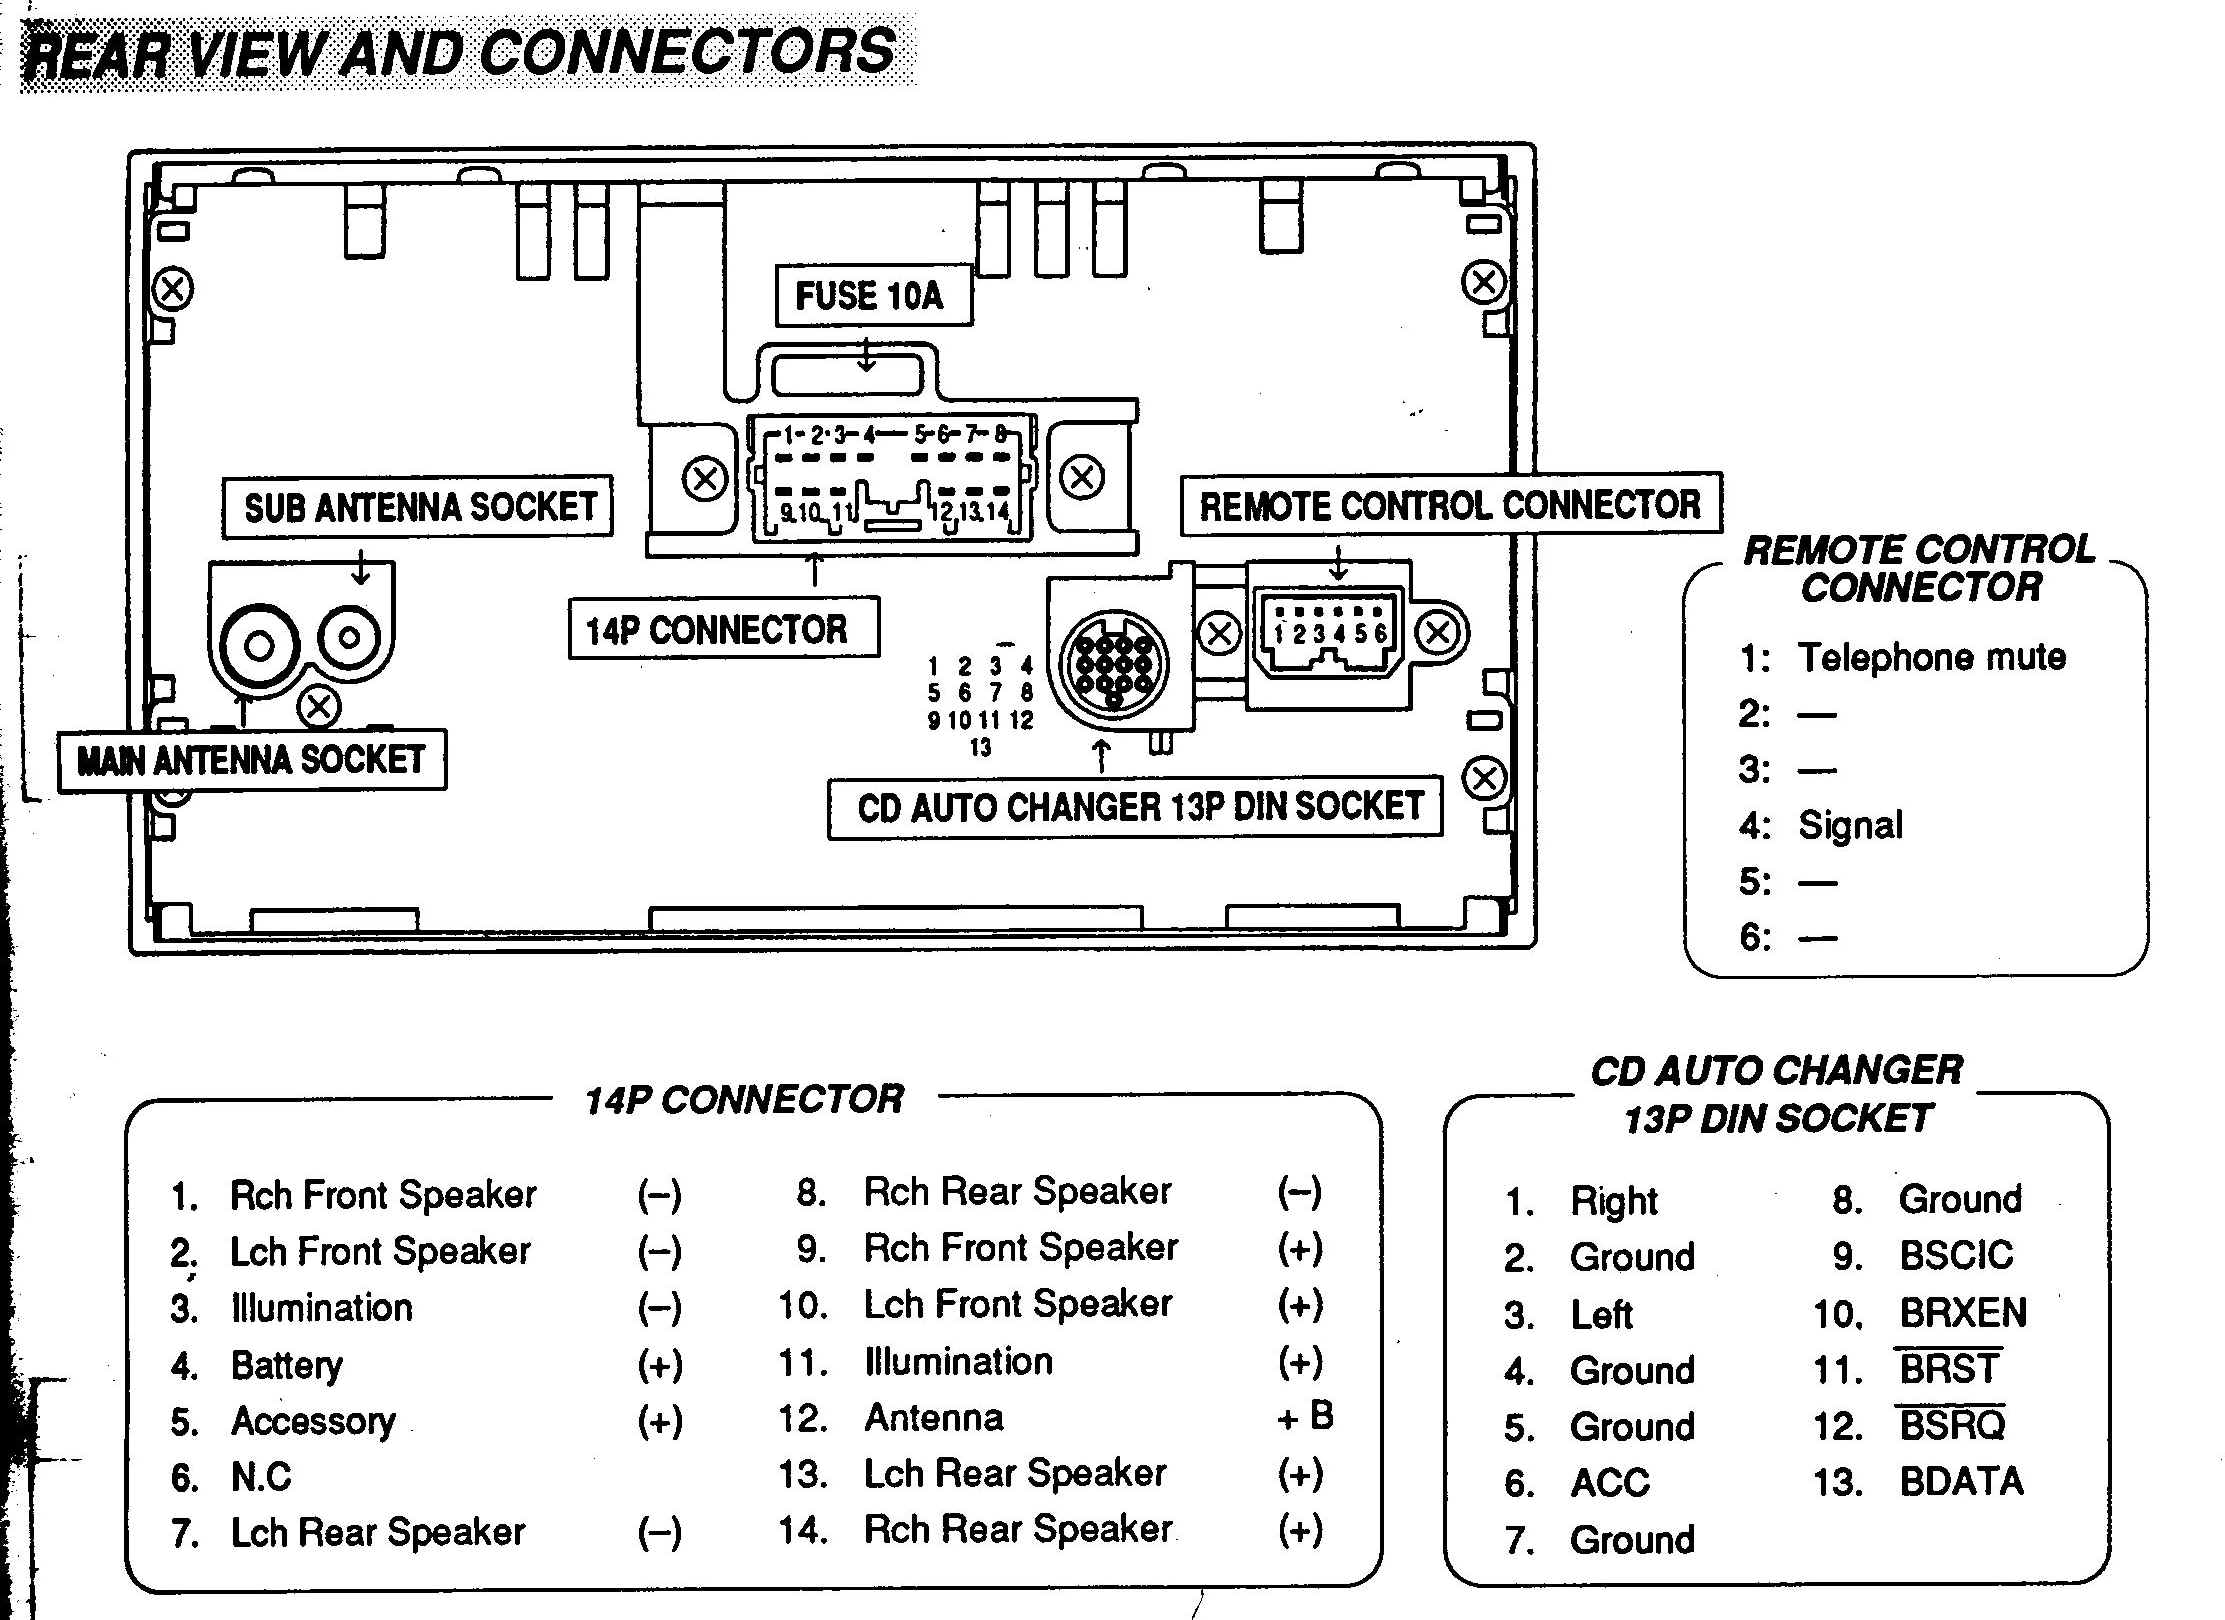 WireHarnessMit121003 wiring diagram for radio in vehicles readingrat net Car Audio Capacitor Wiring Diagram at n-0.co